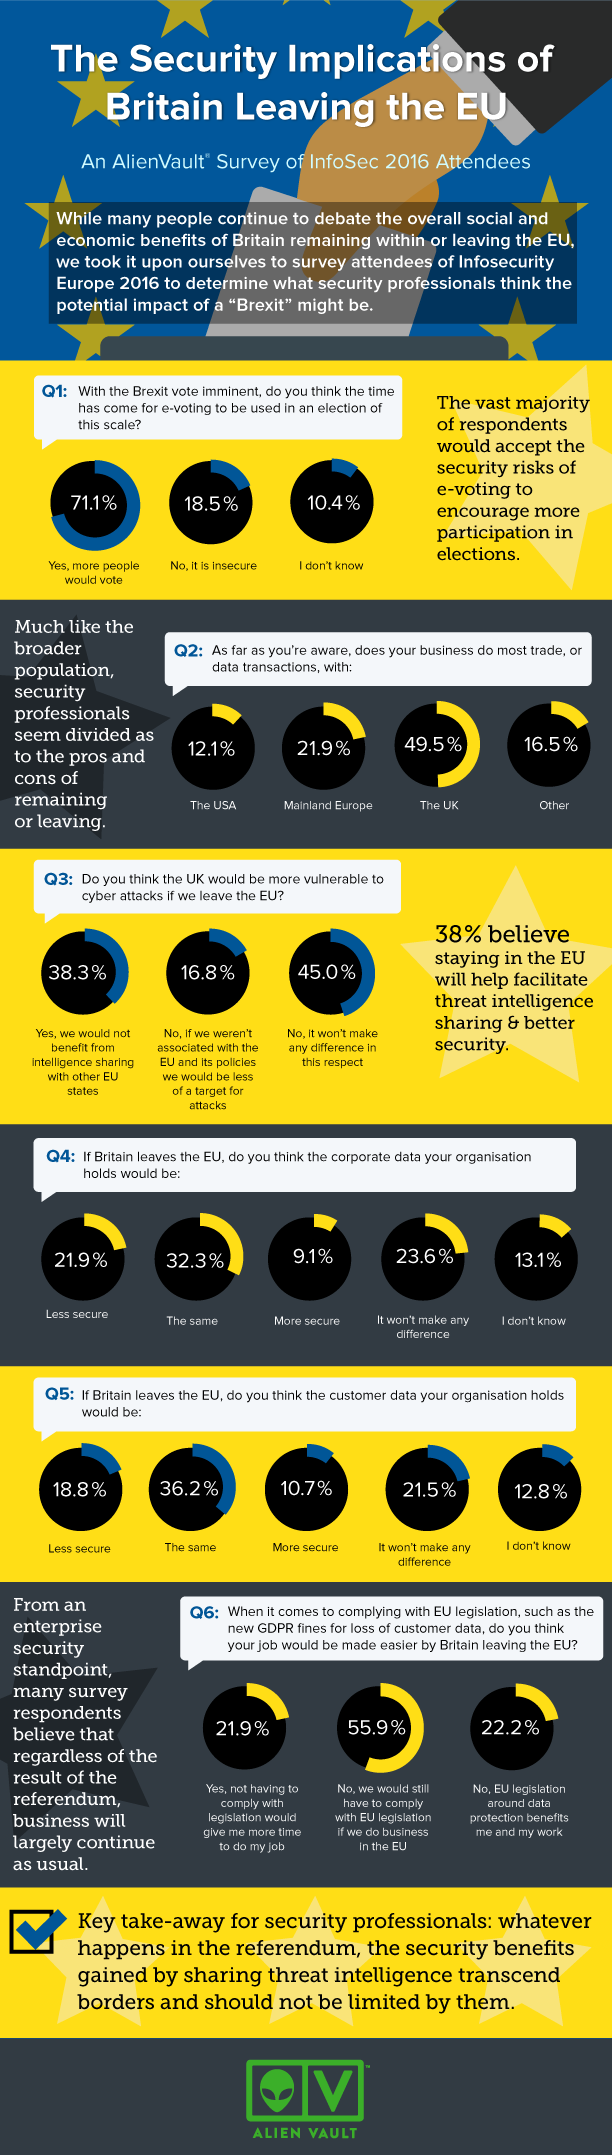 infosec 2016 survey infographic